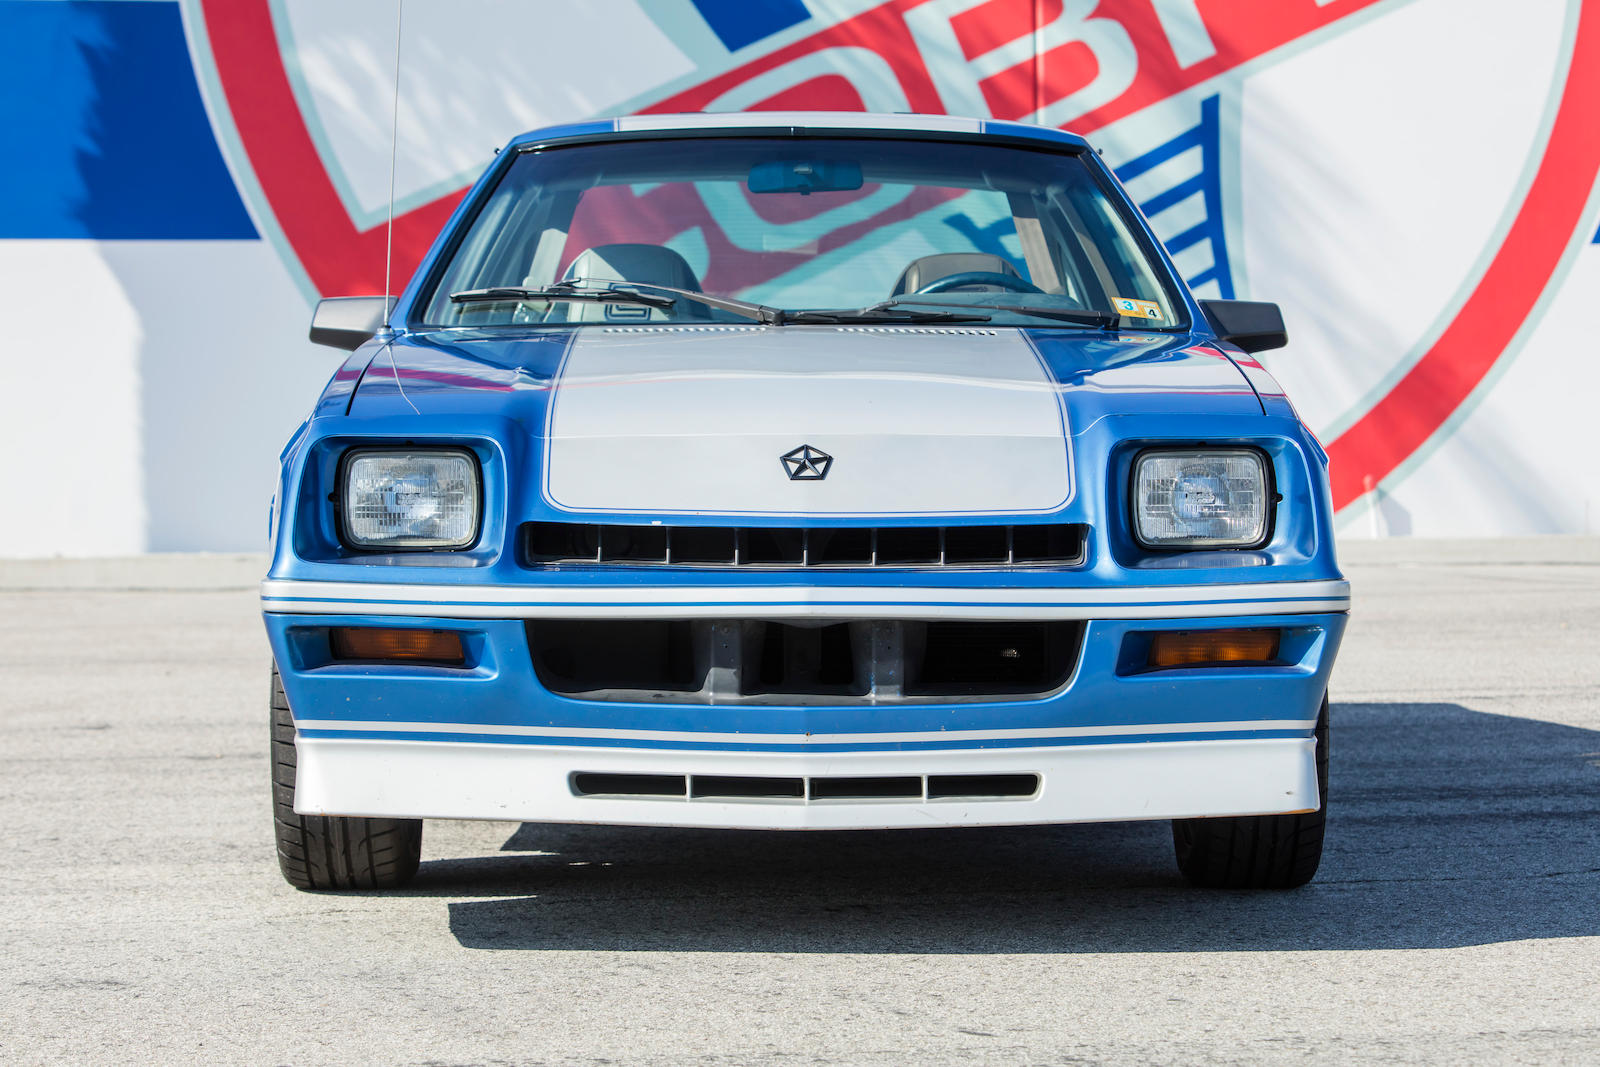 1983 Dodge Shelby Charger front clip